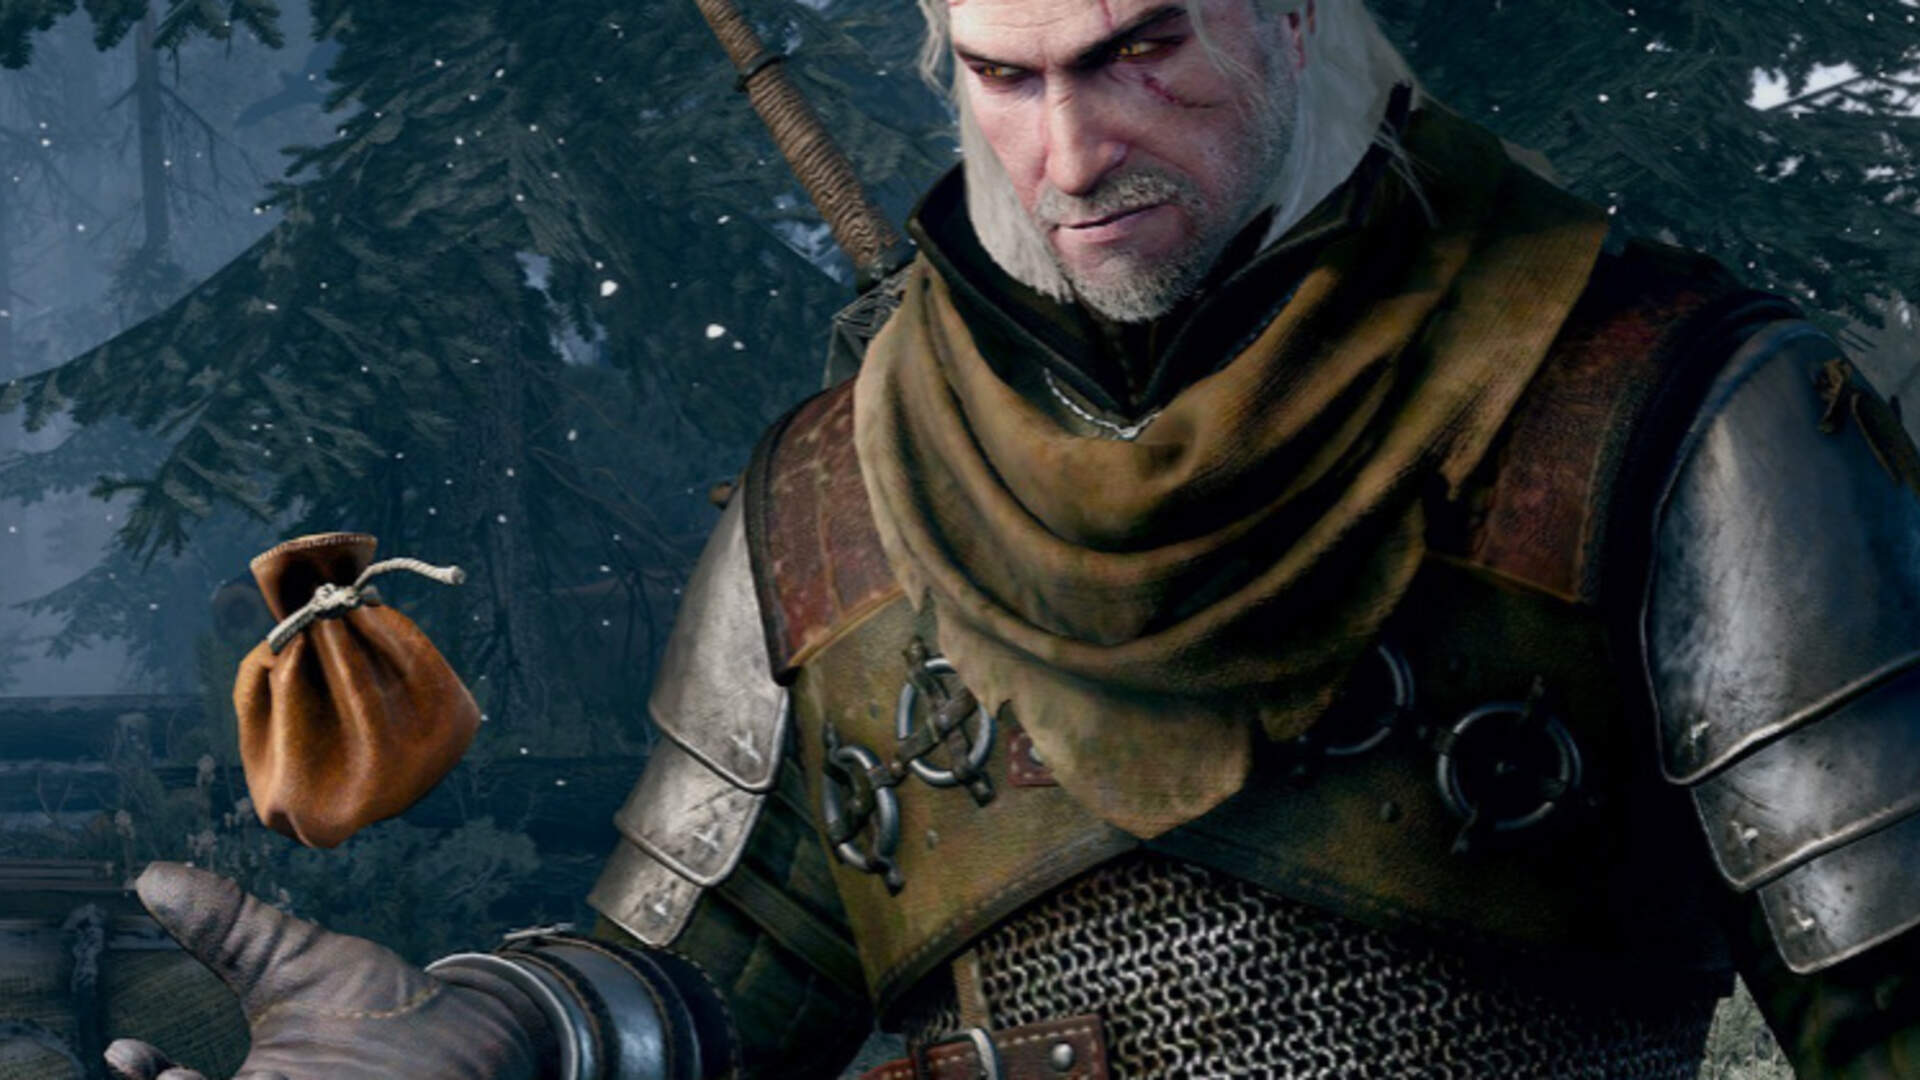 The Witcher 3's Development Was Cheaper, But Still in AAA Territory